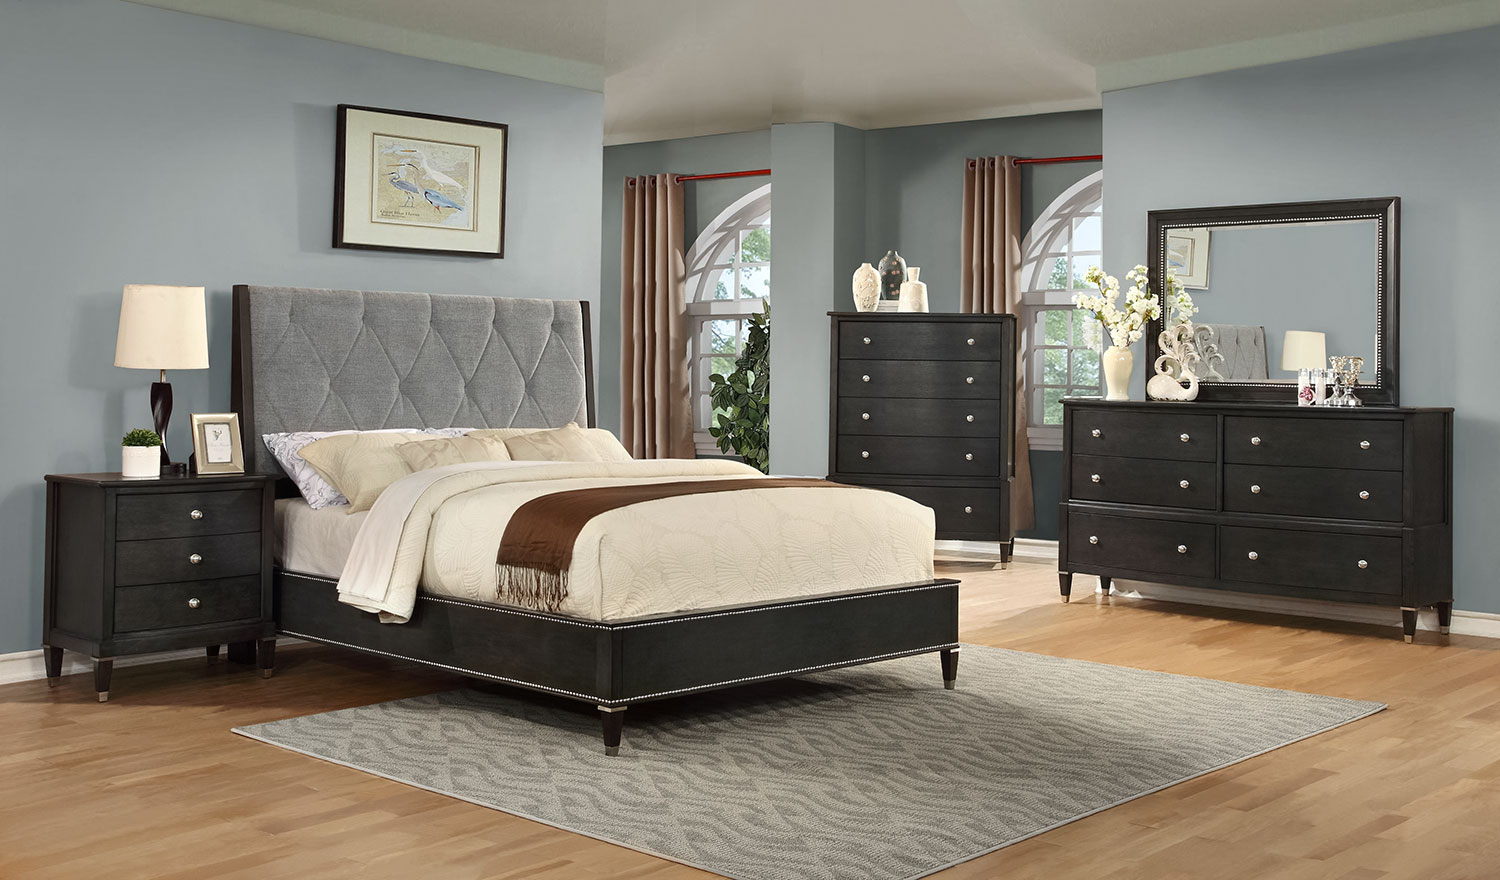 Nelson 5-Piece King Bedroom Set - Pewter